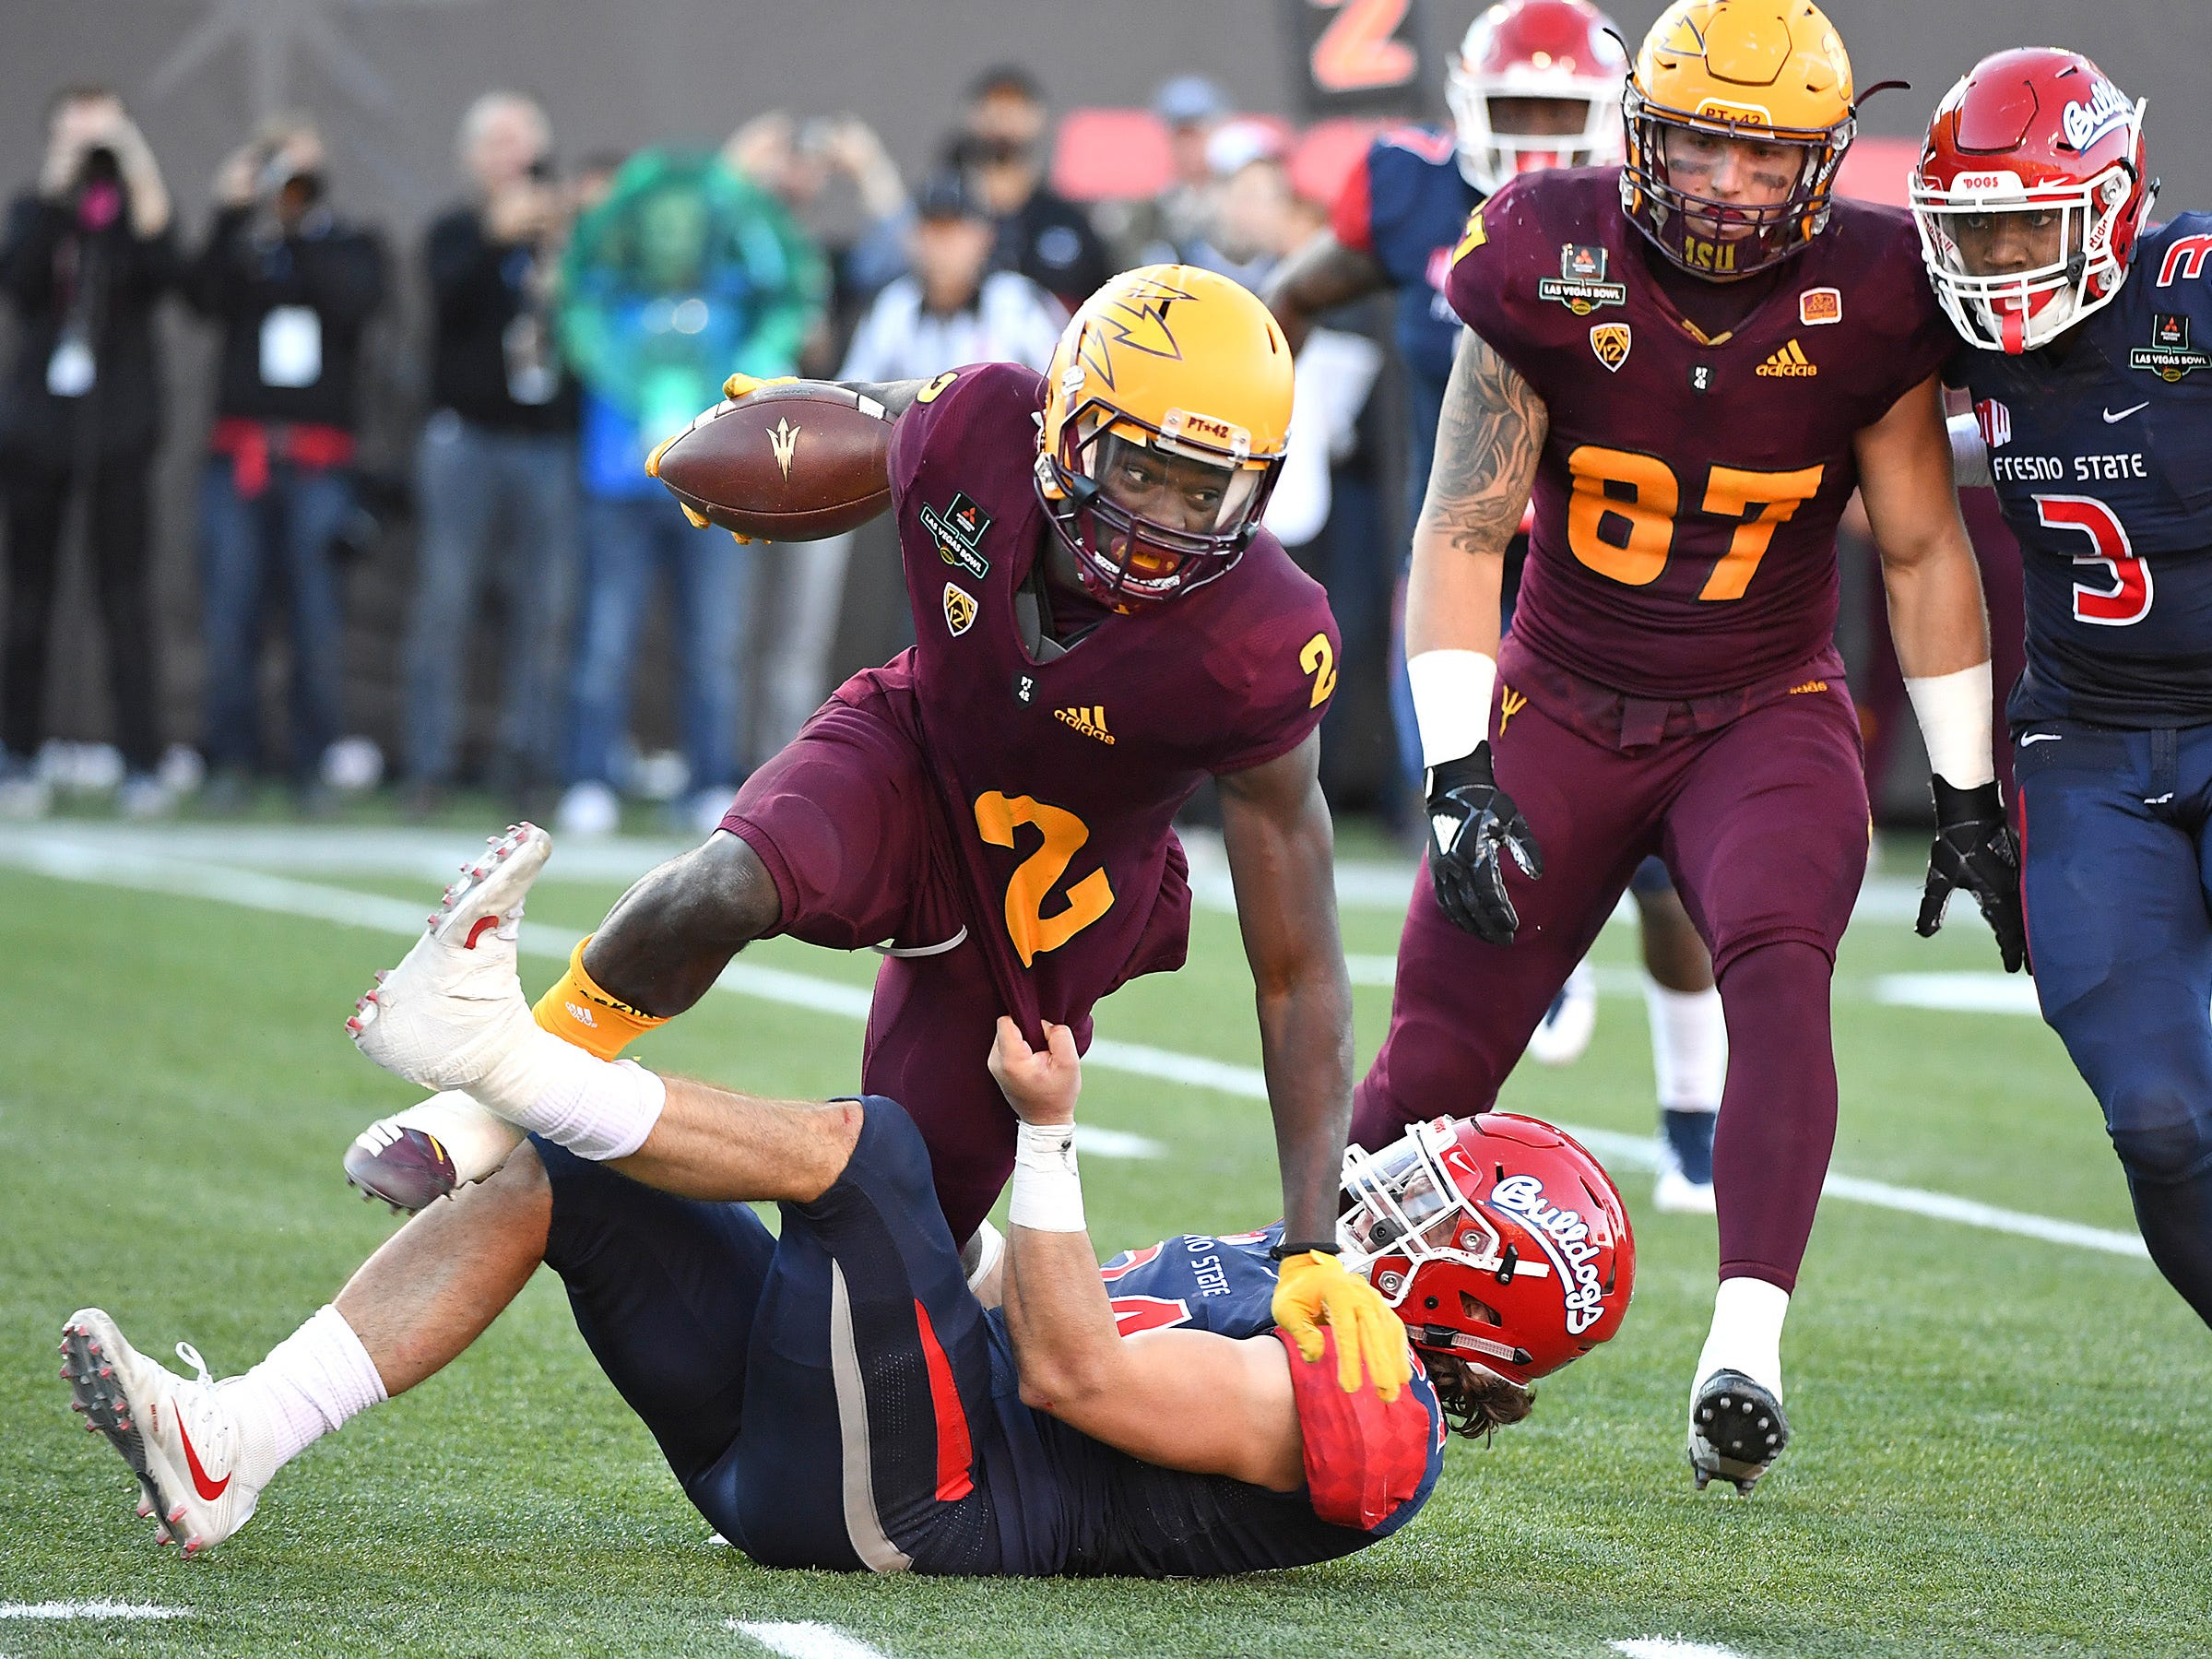 Brandon Aiyuk's performance in place of N'Keal Harry the Las Vegas Bowl was encouraging, ASU head coach Herm Edwards said.